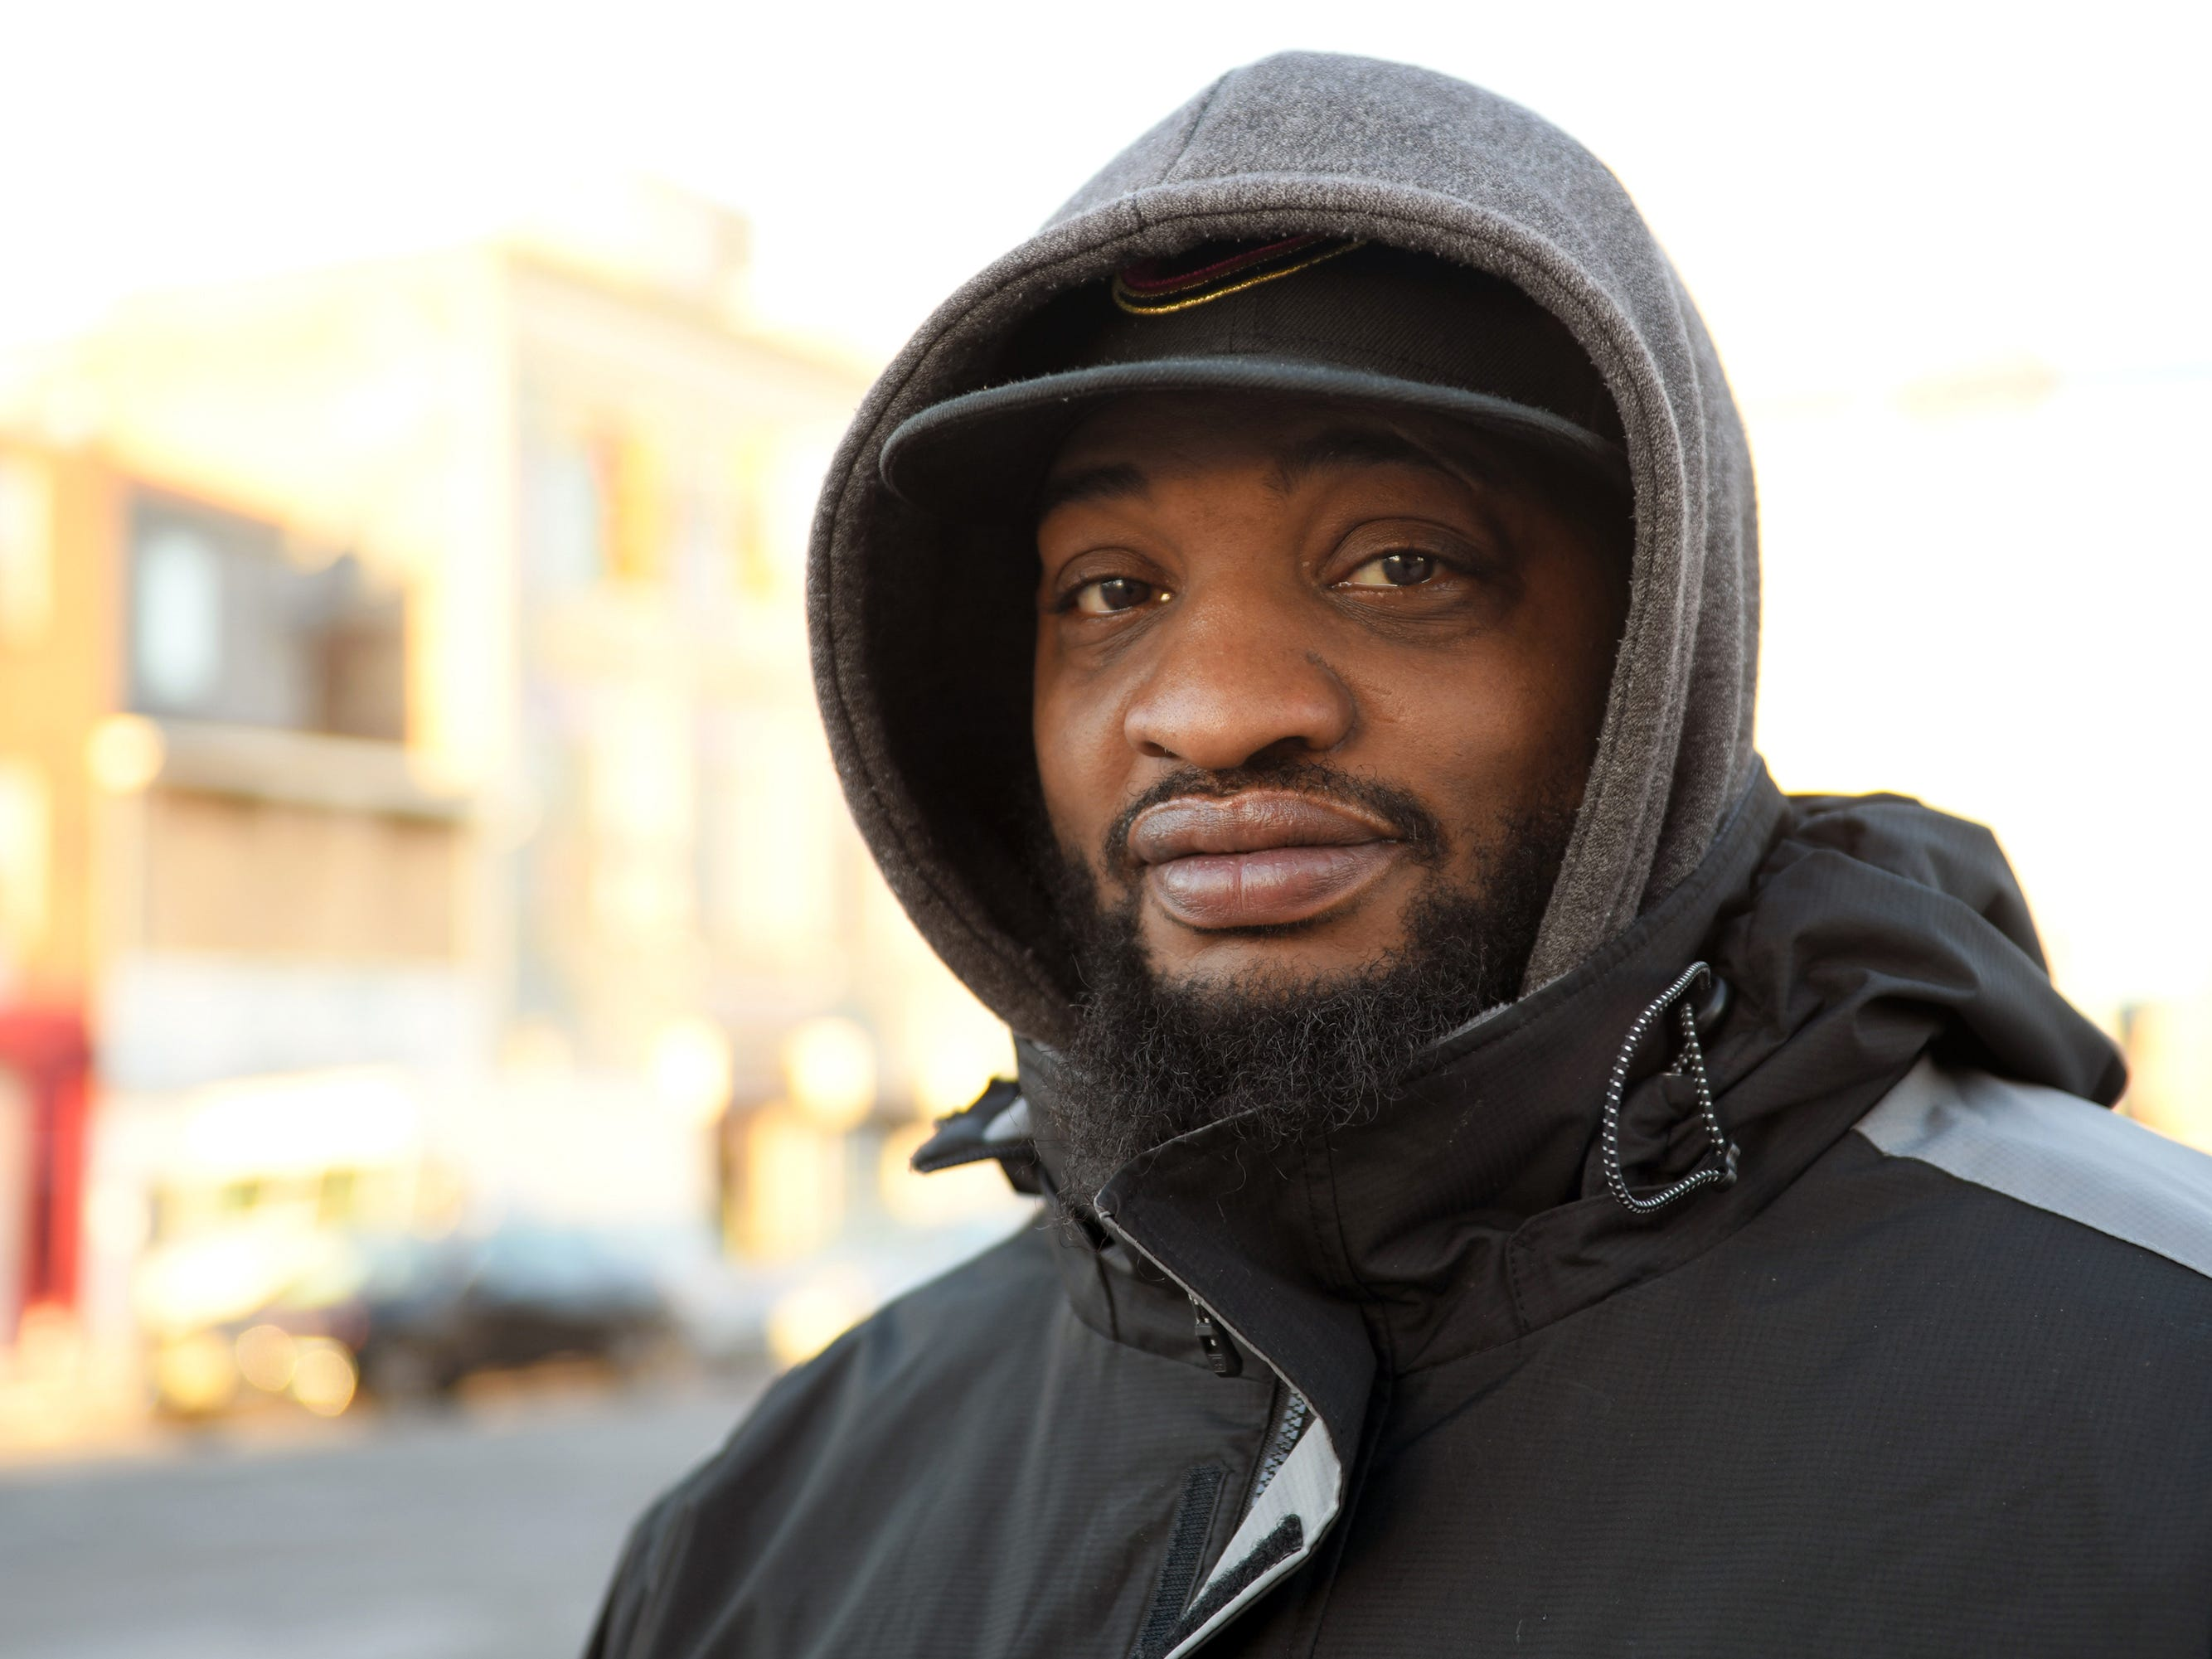 William Branch, 34, lives a block off Dr. Martin Luther King Jr. Boulevard in Atlantic City and works at the Center for African Studies at Rutgers University. Branch thinks Dr. Martin Luther King Jr. would have mixed emotions about the state of America today.